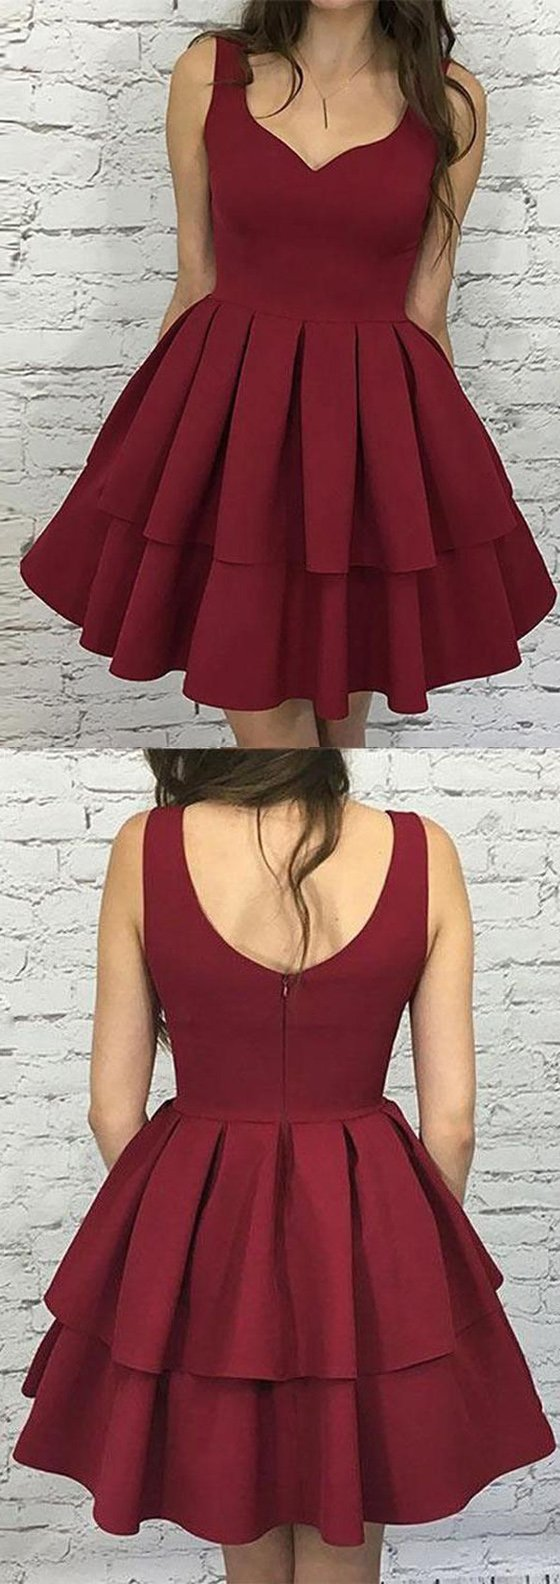 Simple lovely homecoming dresses cheap homecoming dresses short